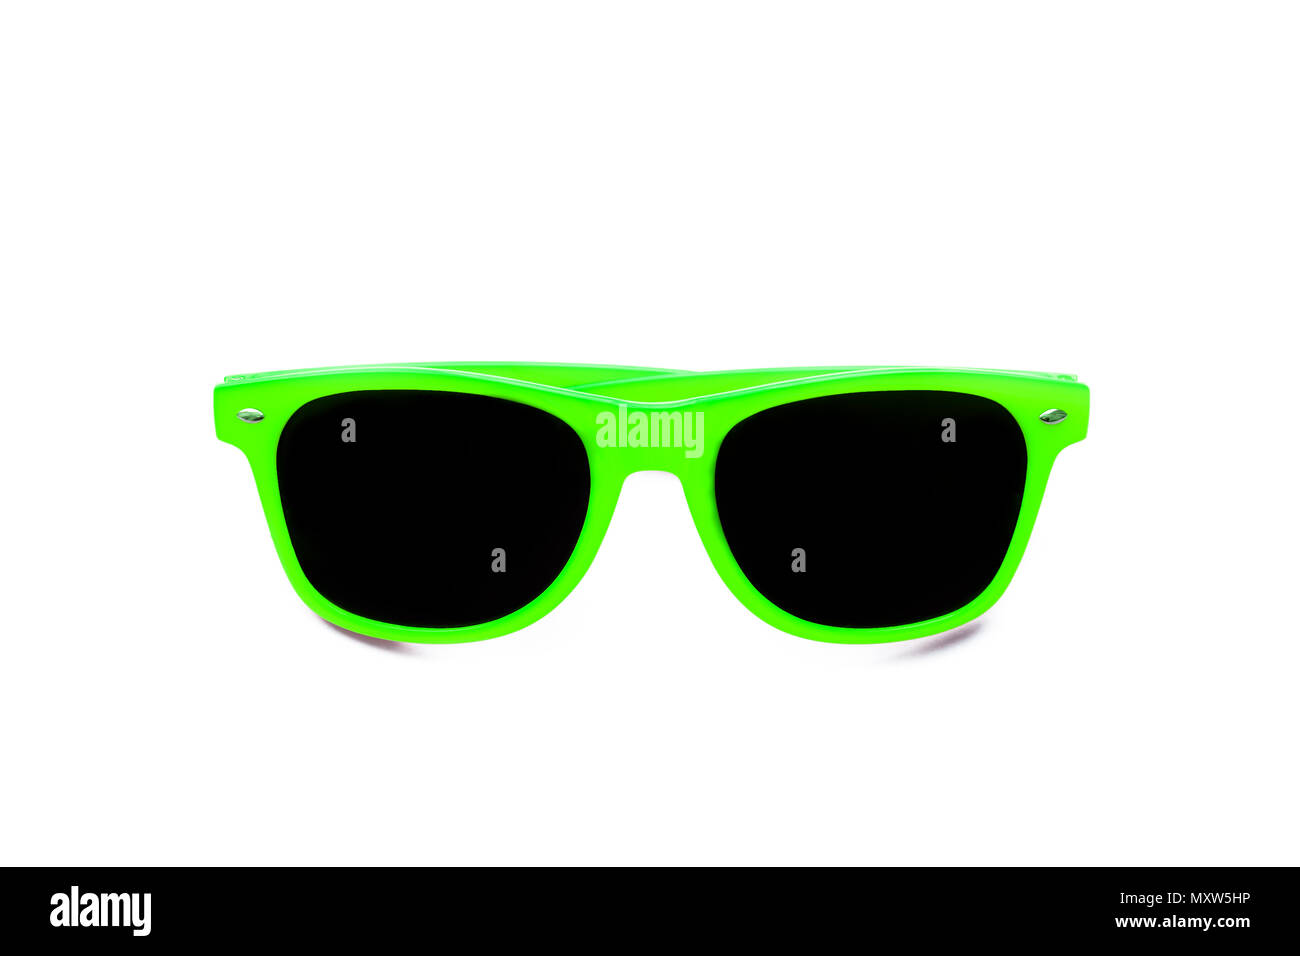 Summer green sunglasses isolated in seamless white background. Minimal design element for sun protection, hot days, tropical travel, summer vacations  - Stock Image